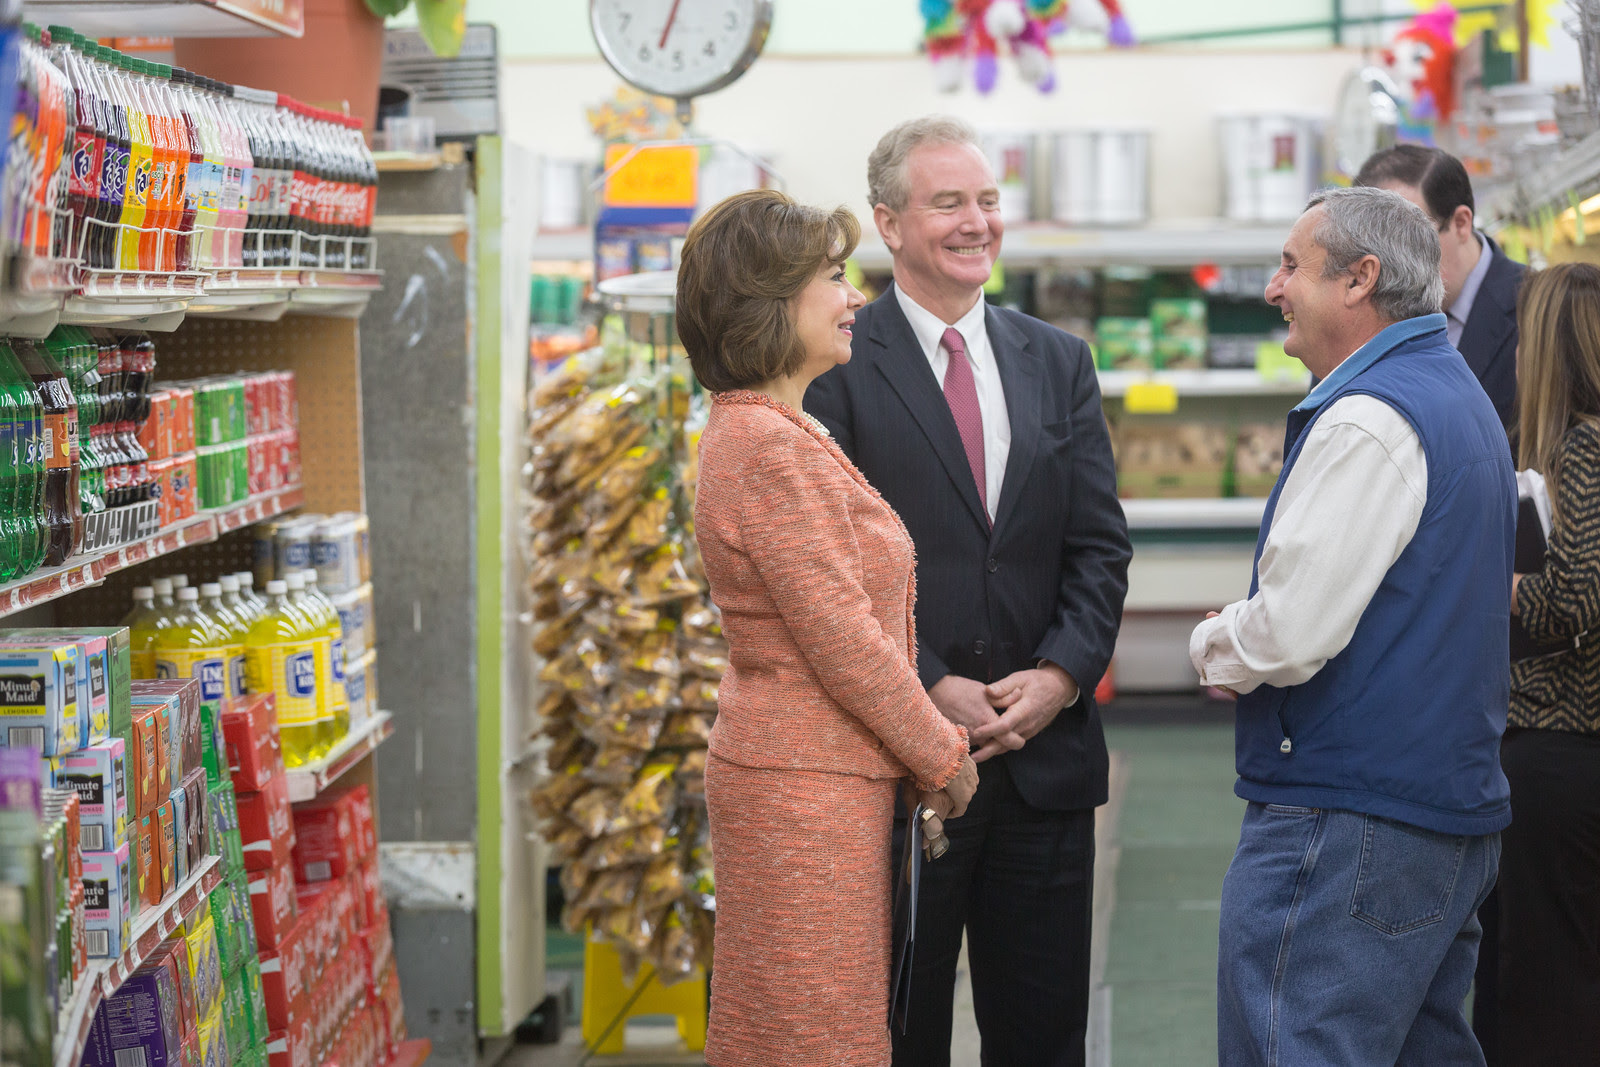 Meeting with a Small Business Owner